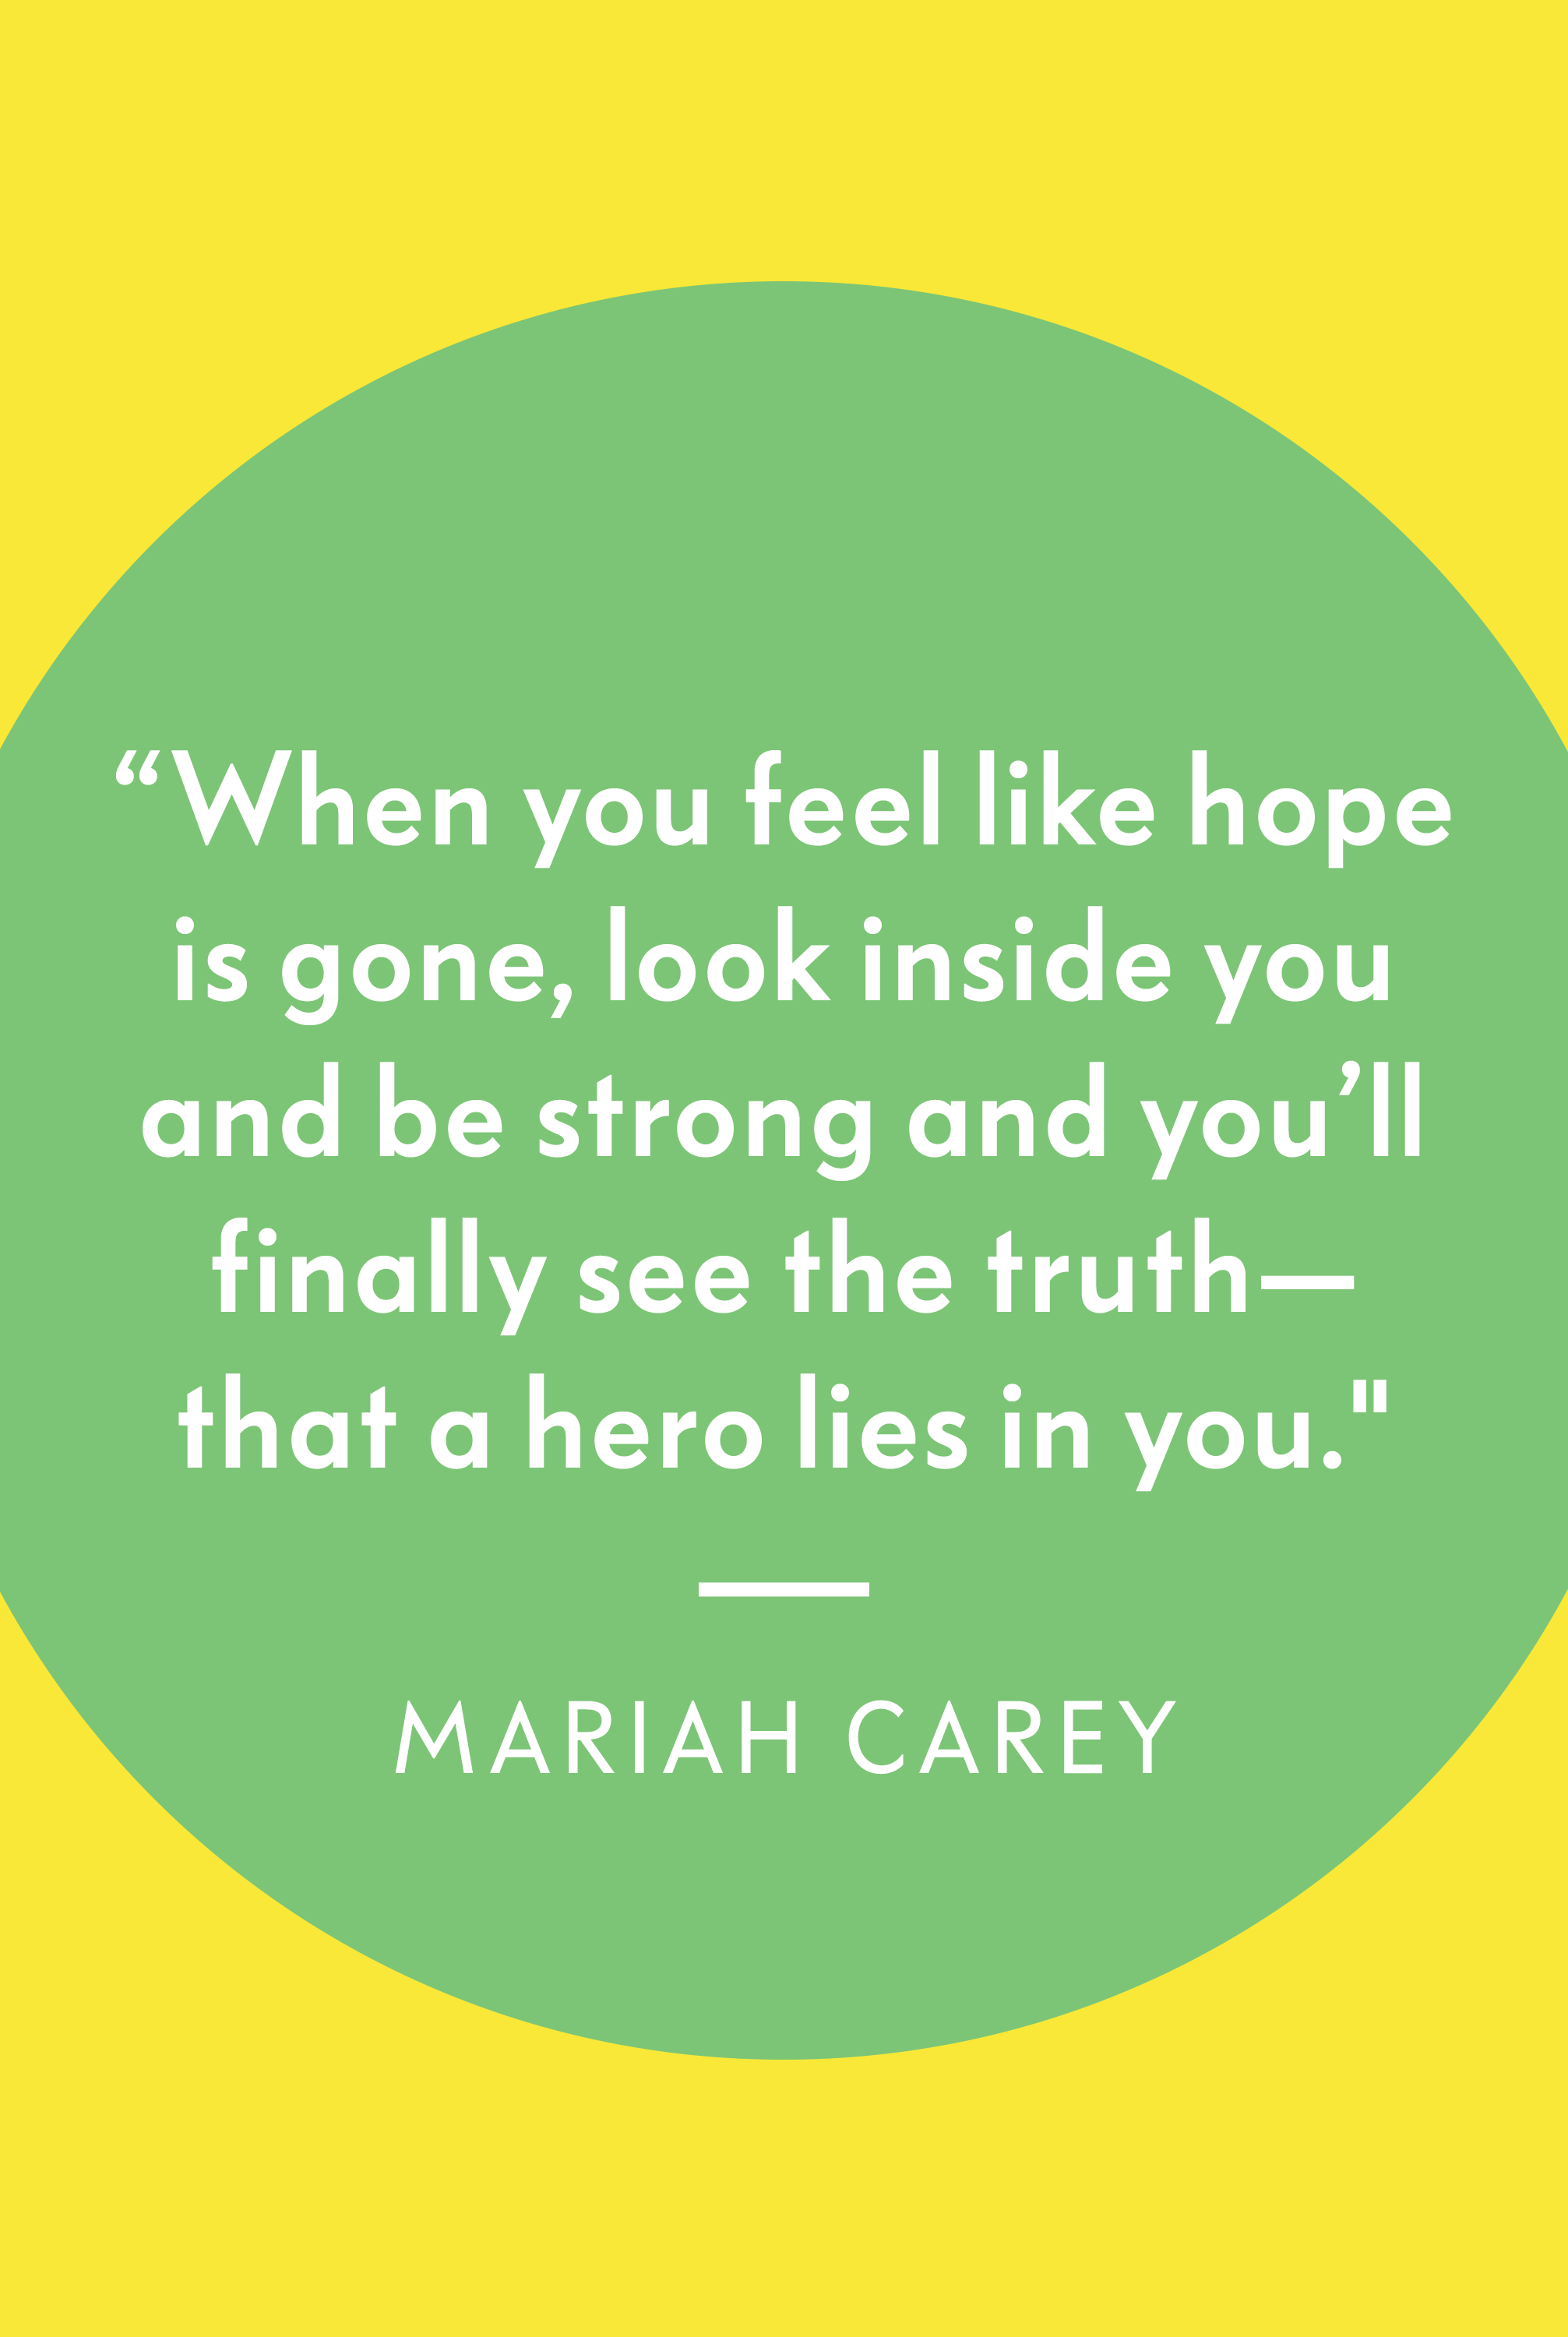 Quotes About Hope | 10 Quotes That Inspire You To Never Give Up Hope